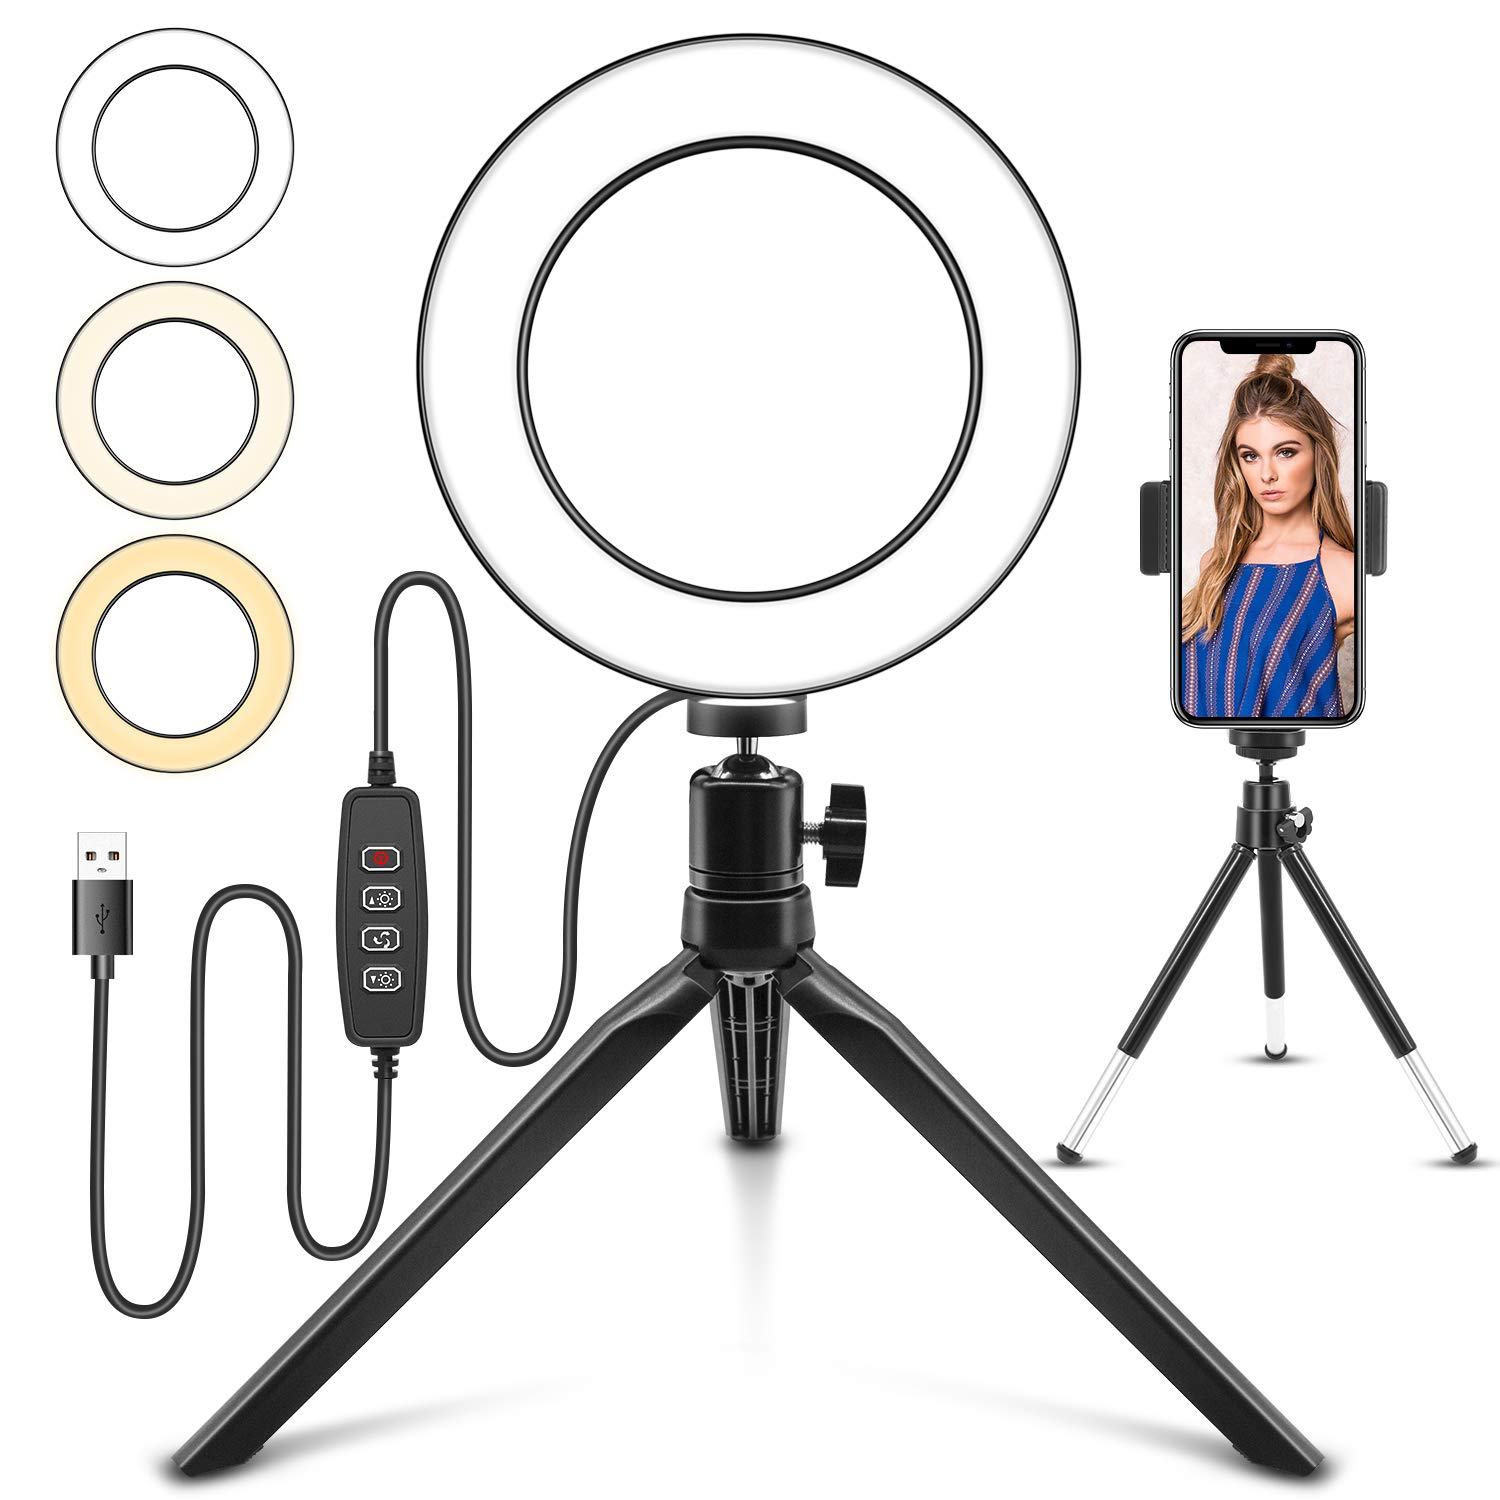 "Ring Light, Jurgen K 6"" Selfie Ring Light with Tripod Stand and Cell Phone Holder for Live Stream, YouTube Video or Makeup, Mini LED Camera Light with 3 Light Modes and 11 Brightness Level"